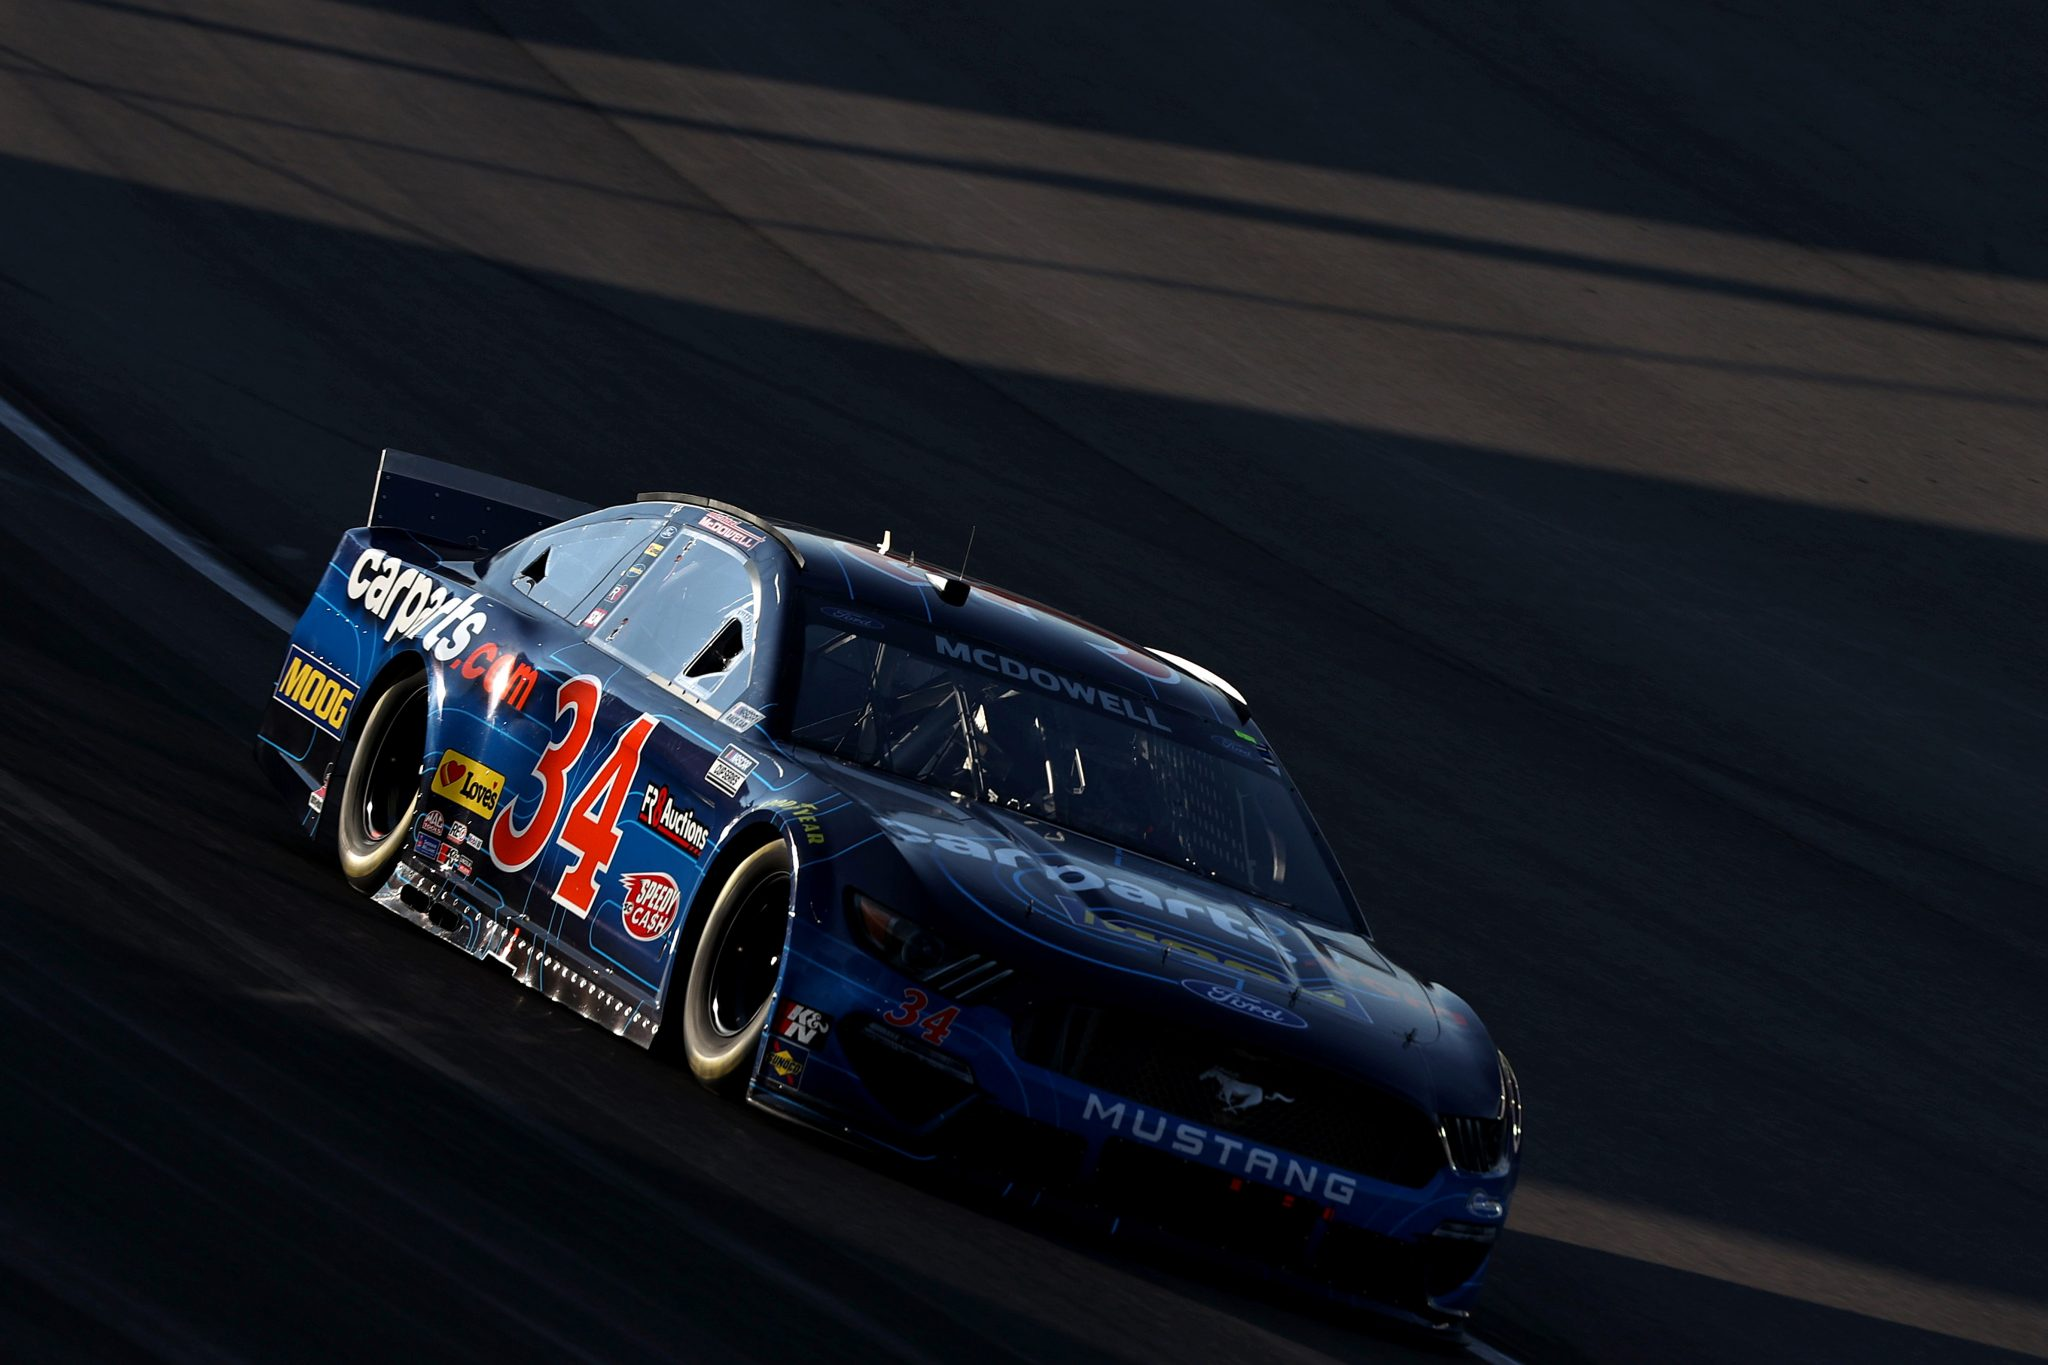 LAS VEGAS, NEVADA - SEPTEMBER 26: Michael McDowell, driver of the #34 CarParts.com Ford, drives during the NASCAR Cup Series South Point 400 at Las Vegas Motor Speedway on September 26, 2021 in Las Vegas, Nevada. (Photo by Meg Oliphant/Getty Images) | Getty Images